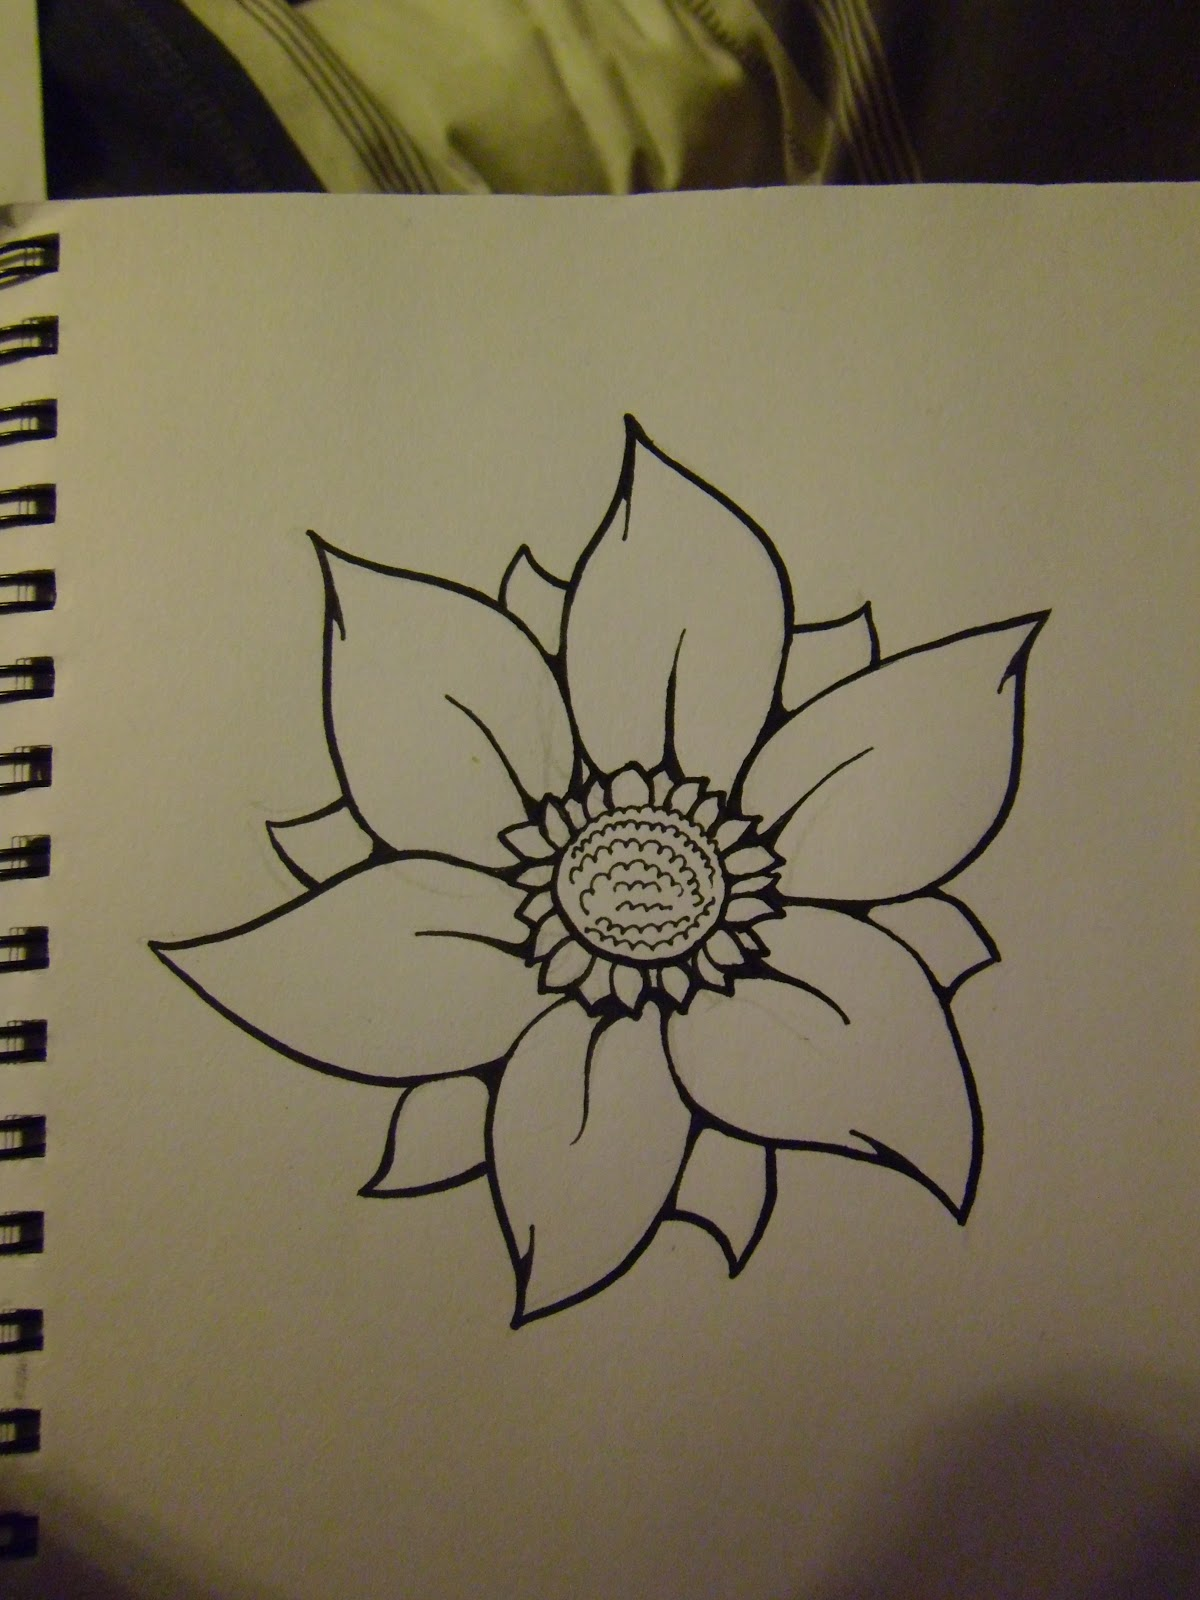 Drawing Scribble Flower : Daryl hobson artwork how to draw a flower step by